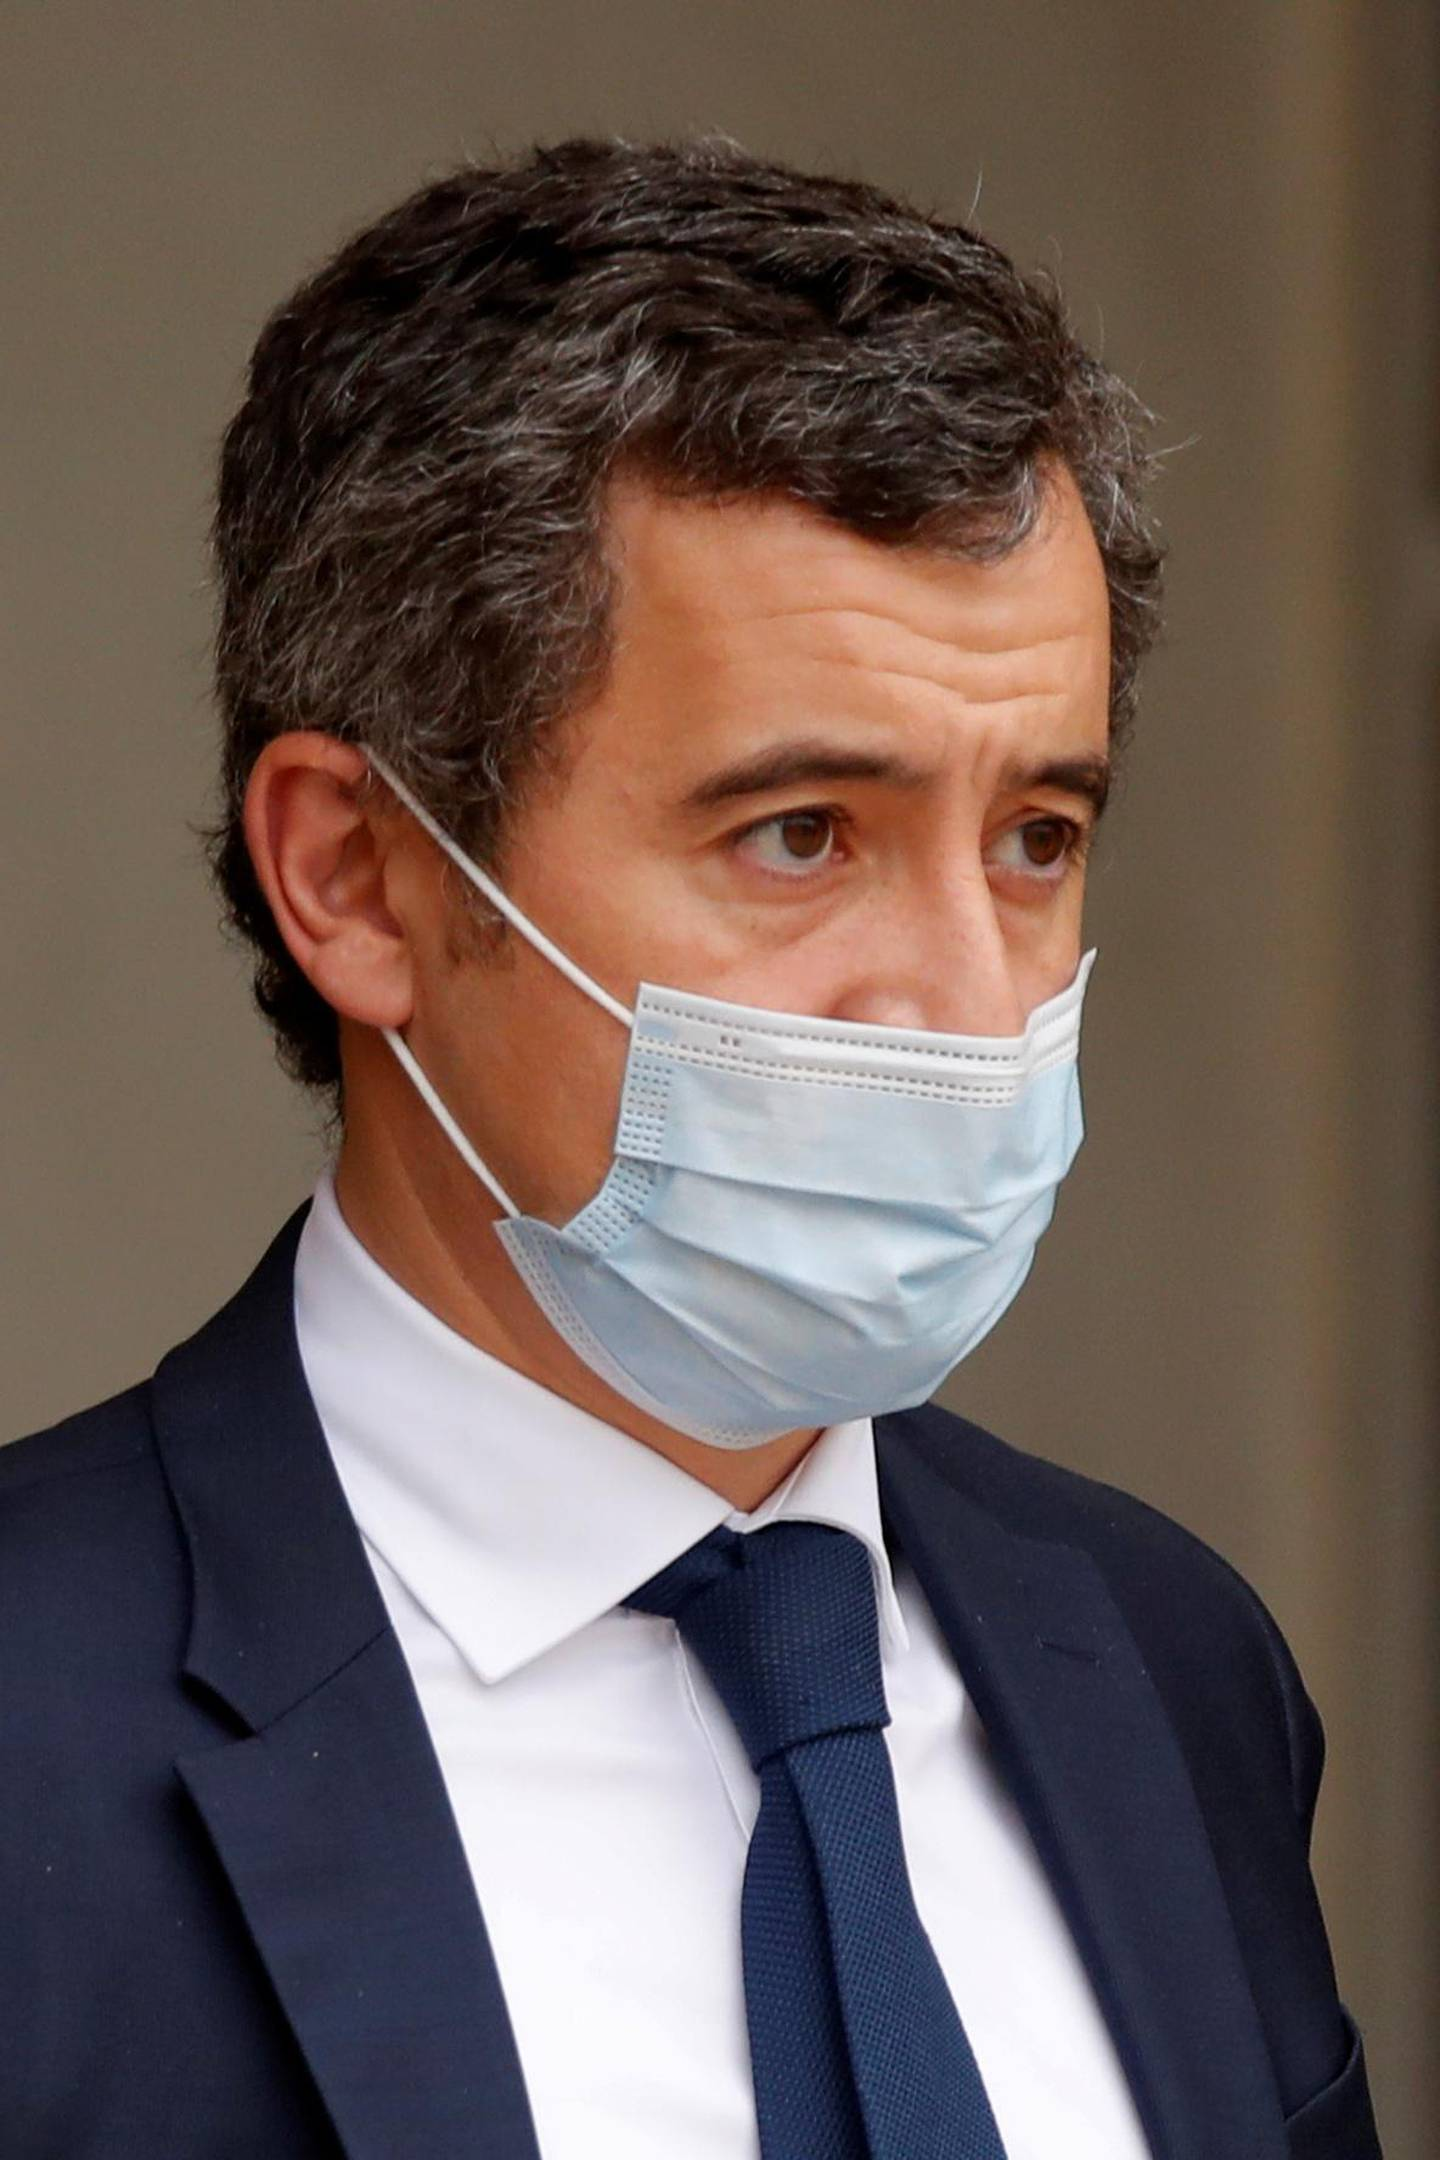 FILE PHOTO: French Interior Minister Gerald Darmanin, wearing a protective face mask, leaves after the weekly cabinet meeting at the Elysee Palace in Paris, France, November 25, 2020. REUTERS/Charles Platiau/File Photo